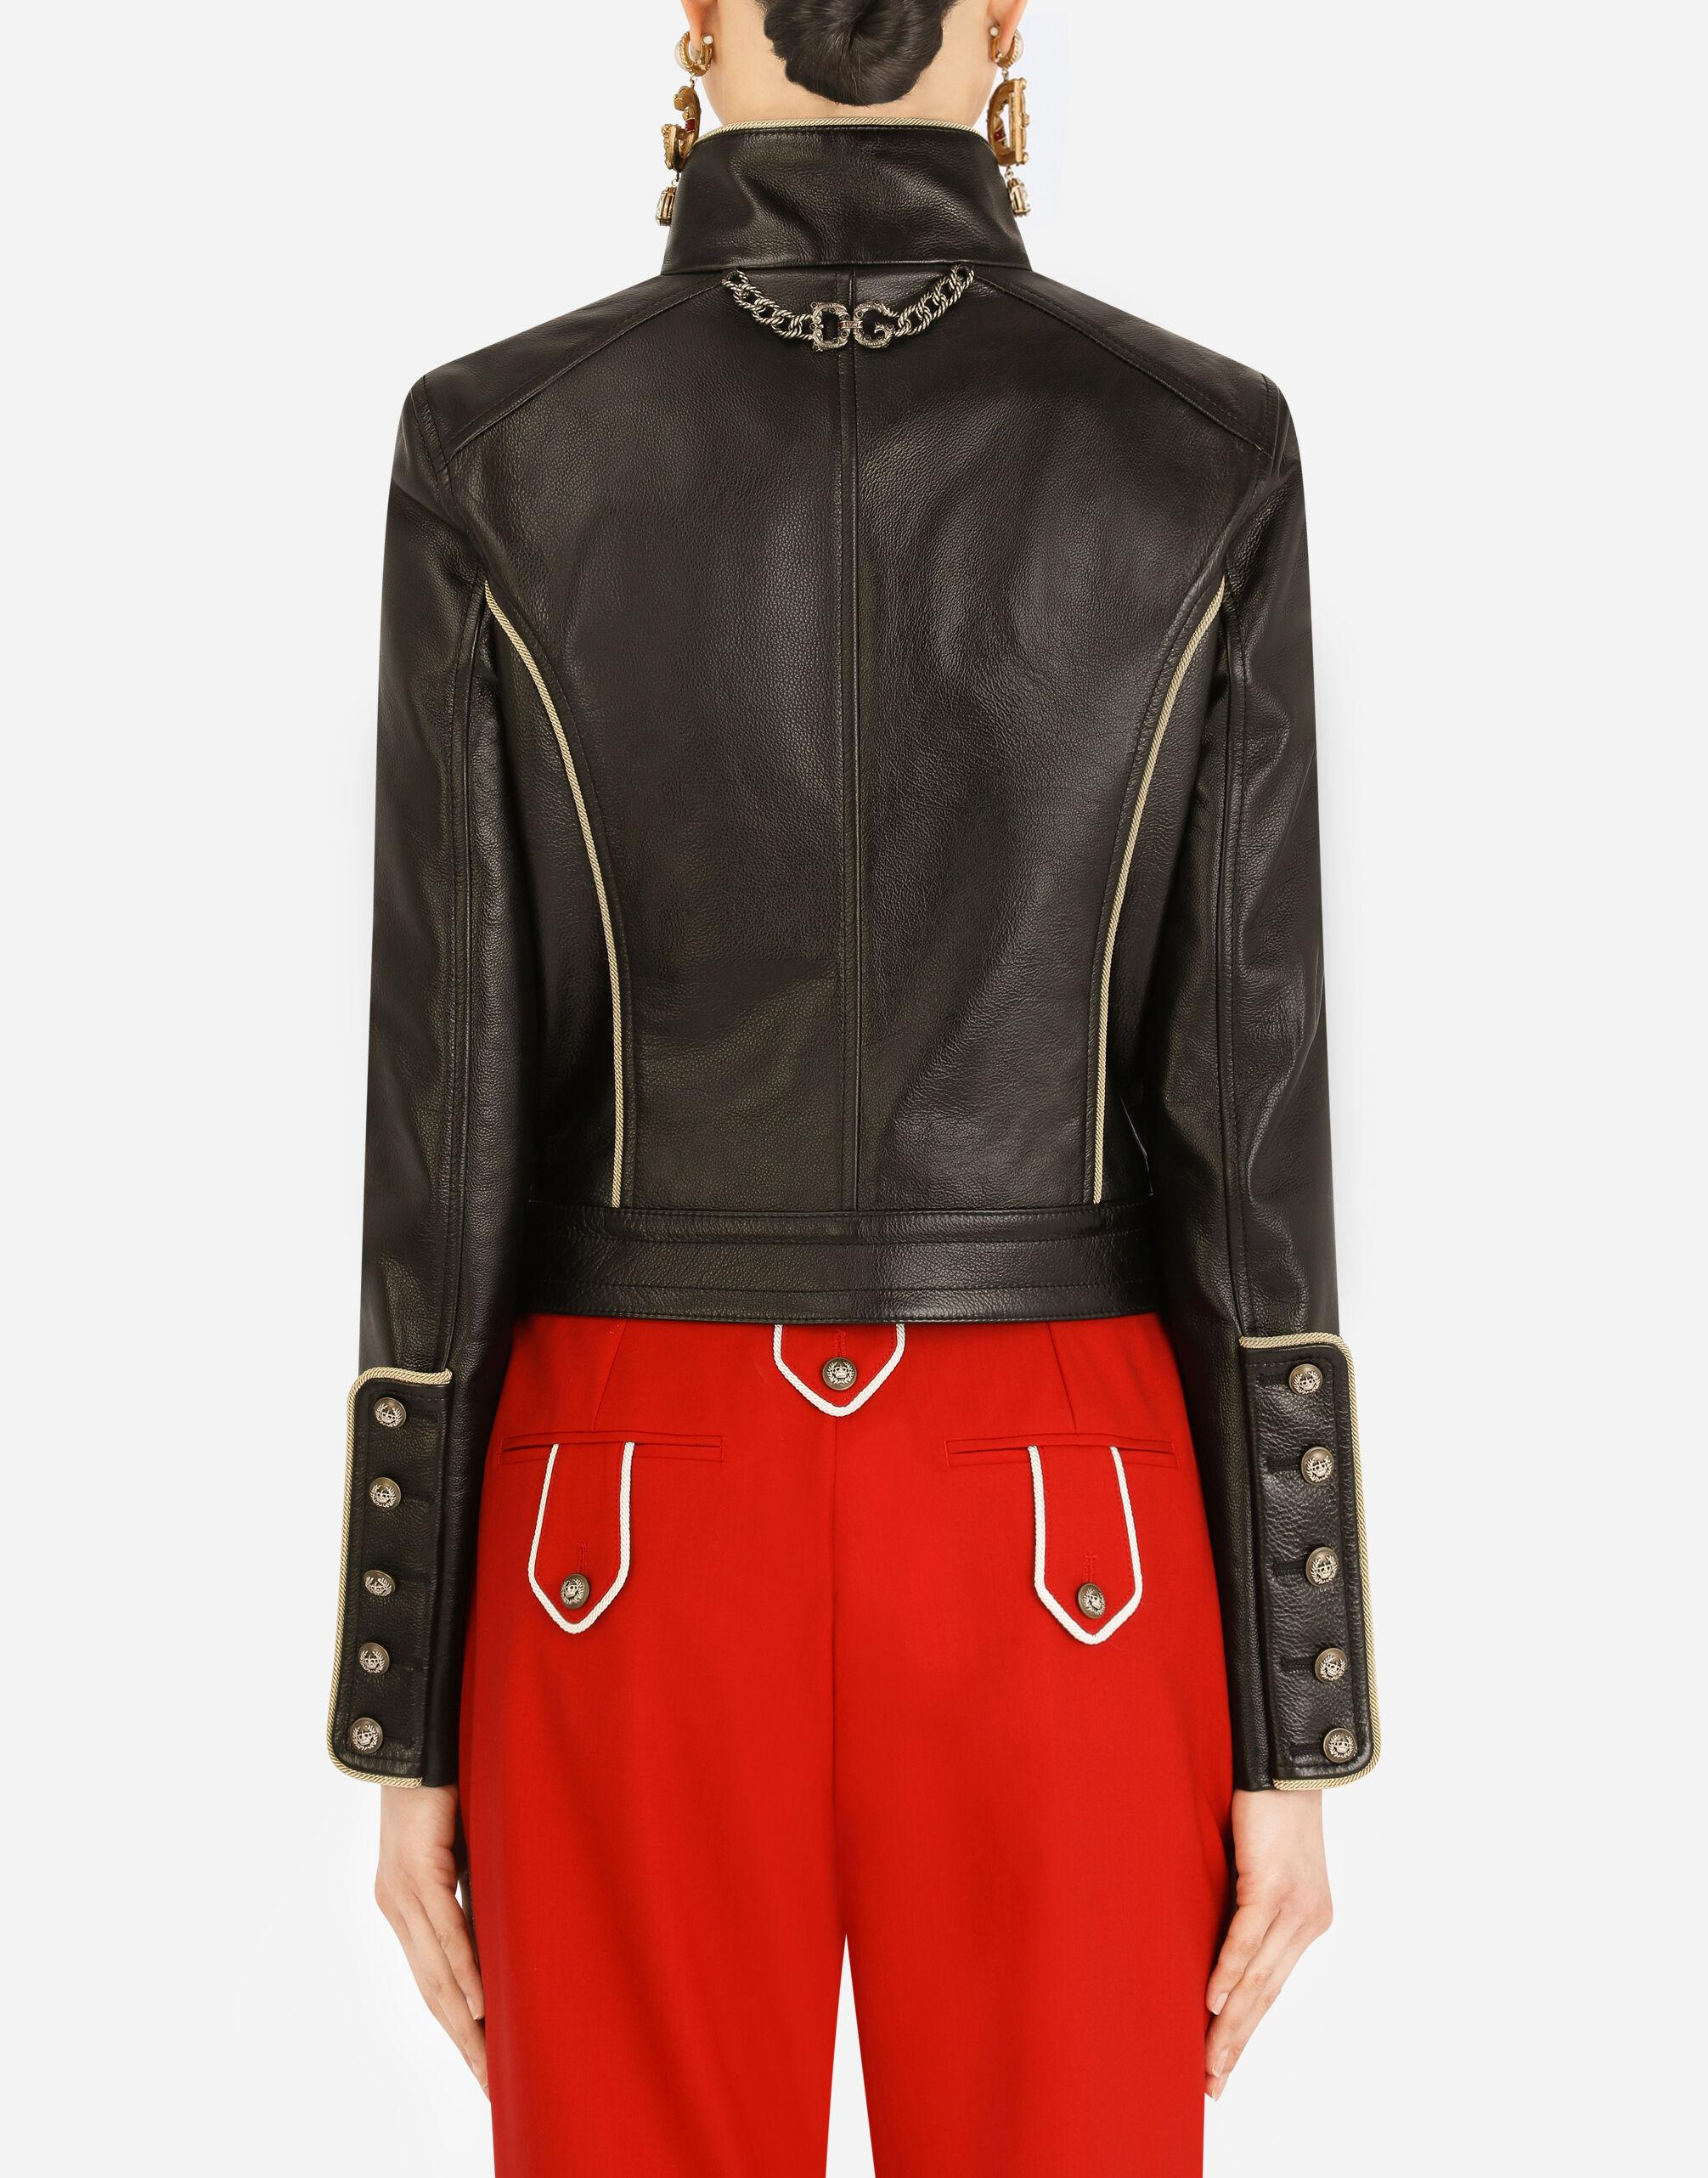 Leather biker jacket with heraldic buttons 1